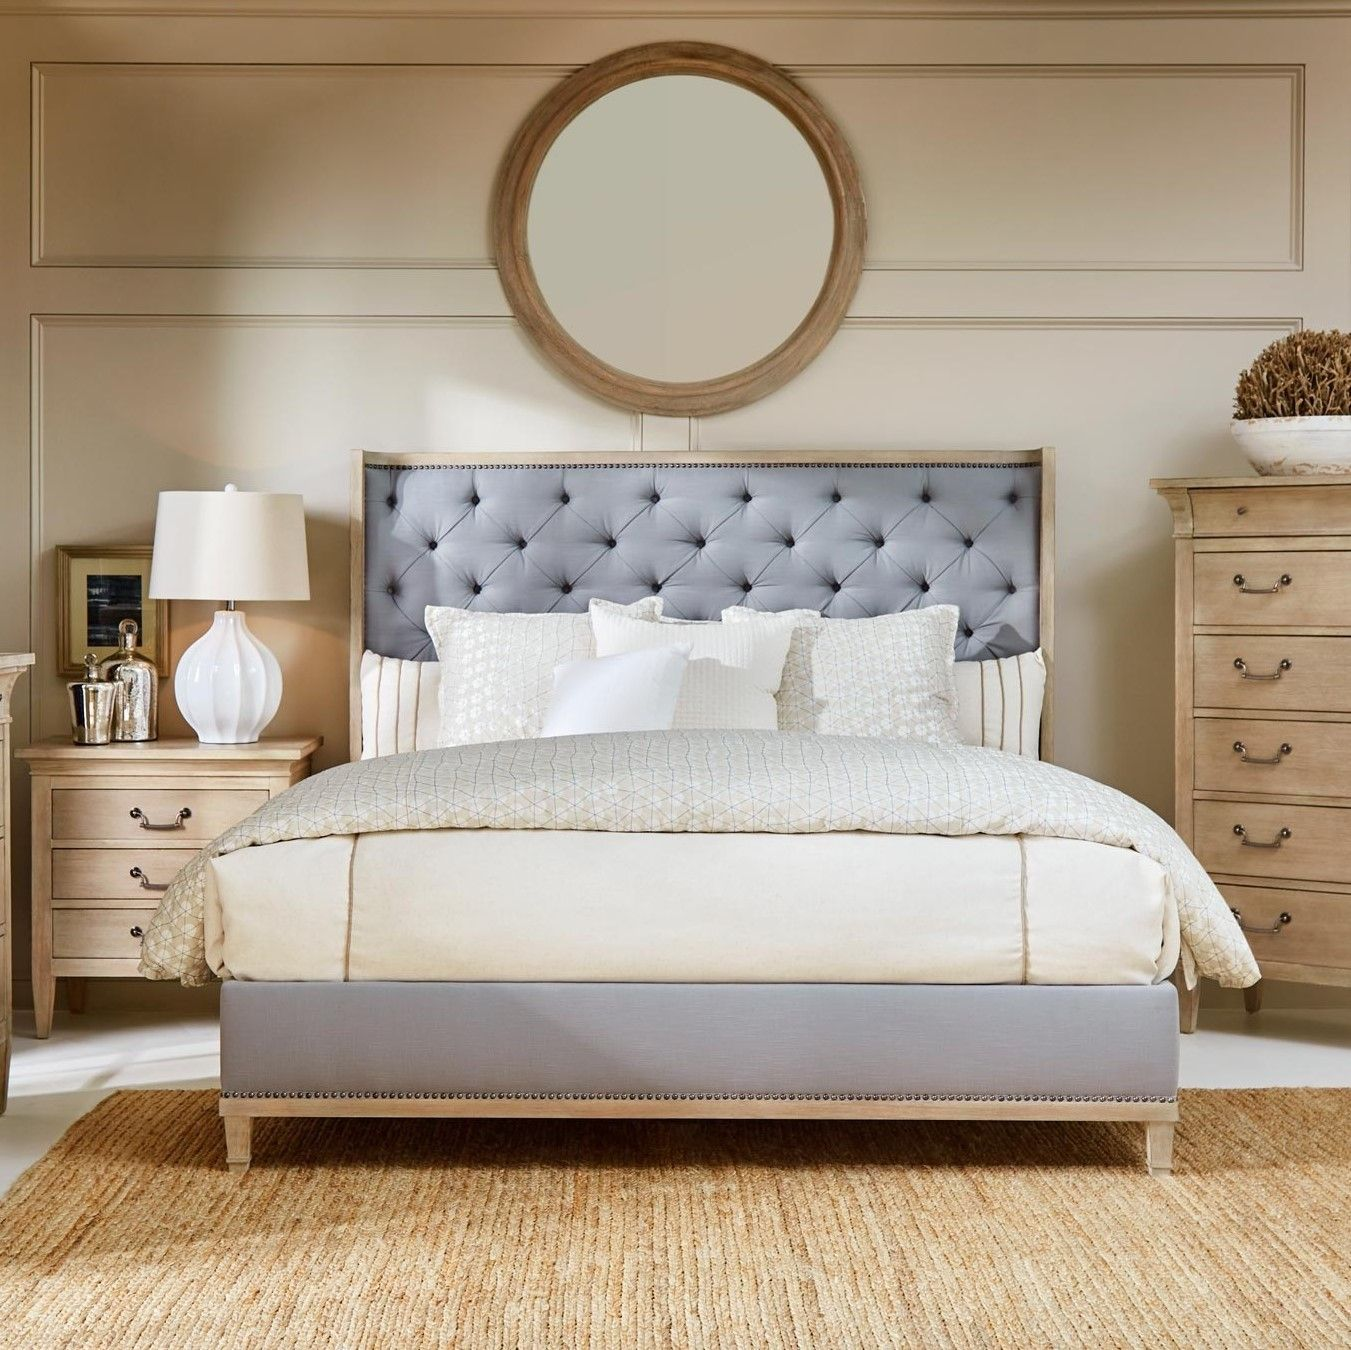 The Art Furniture Anna Jordan Upholstered Bed Is Available In The